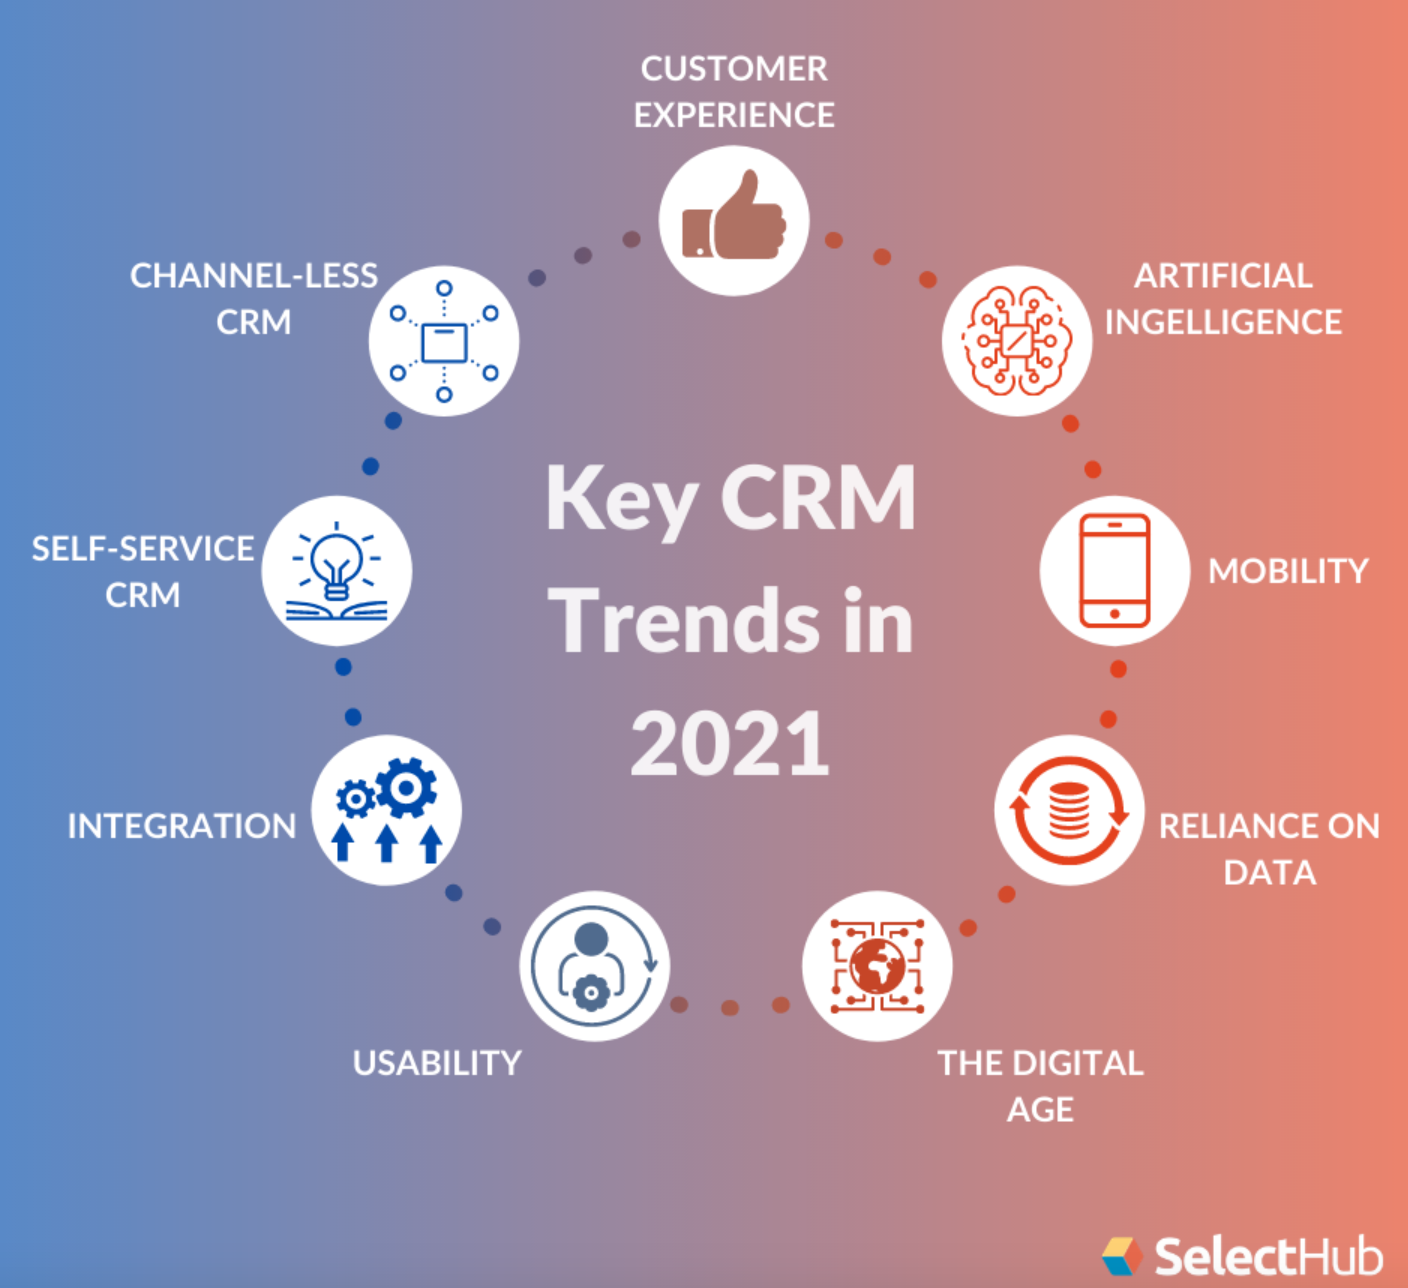 Key CRM Trends